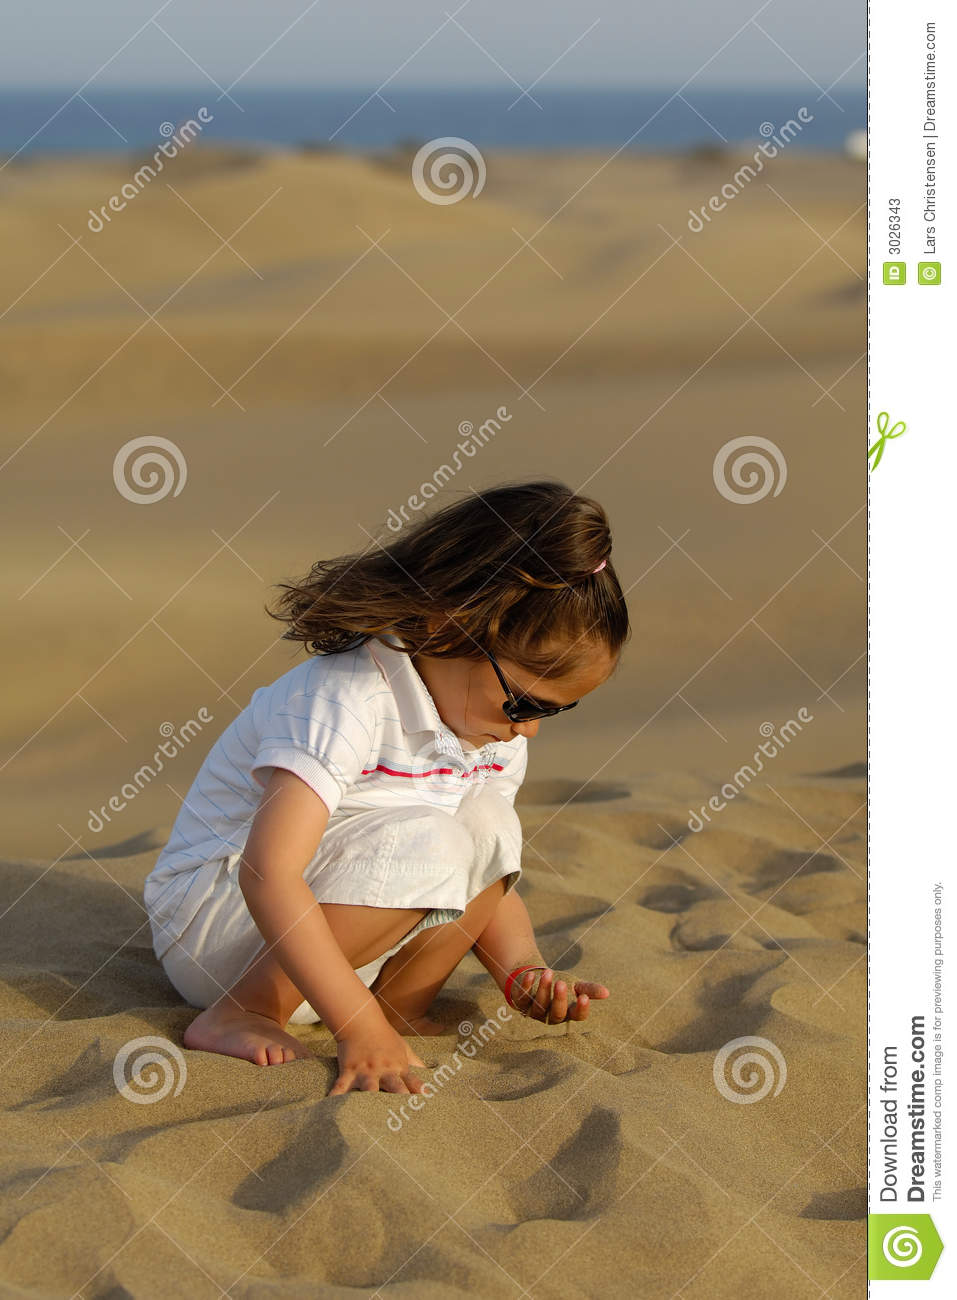 Playing with sand stock image. Image of adventure 80e8096b58